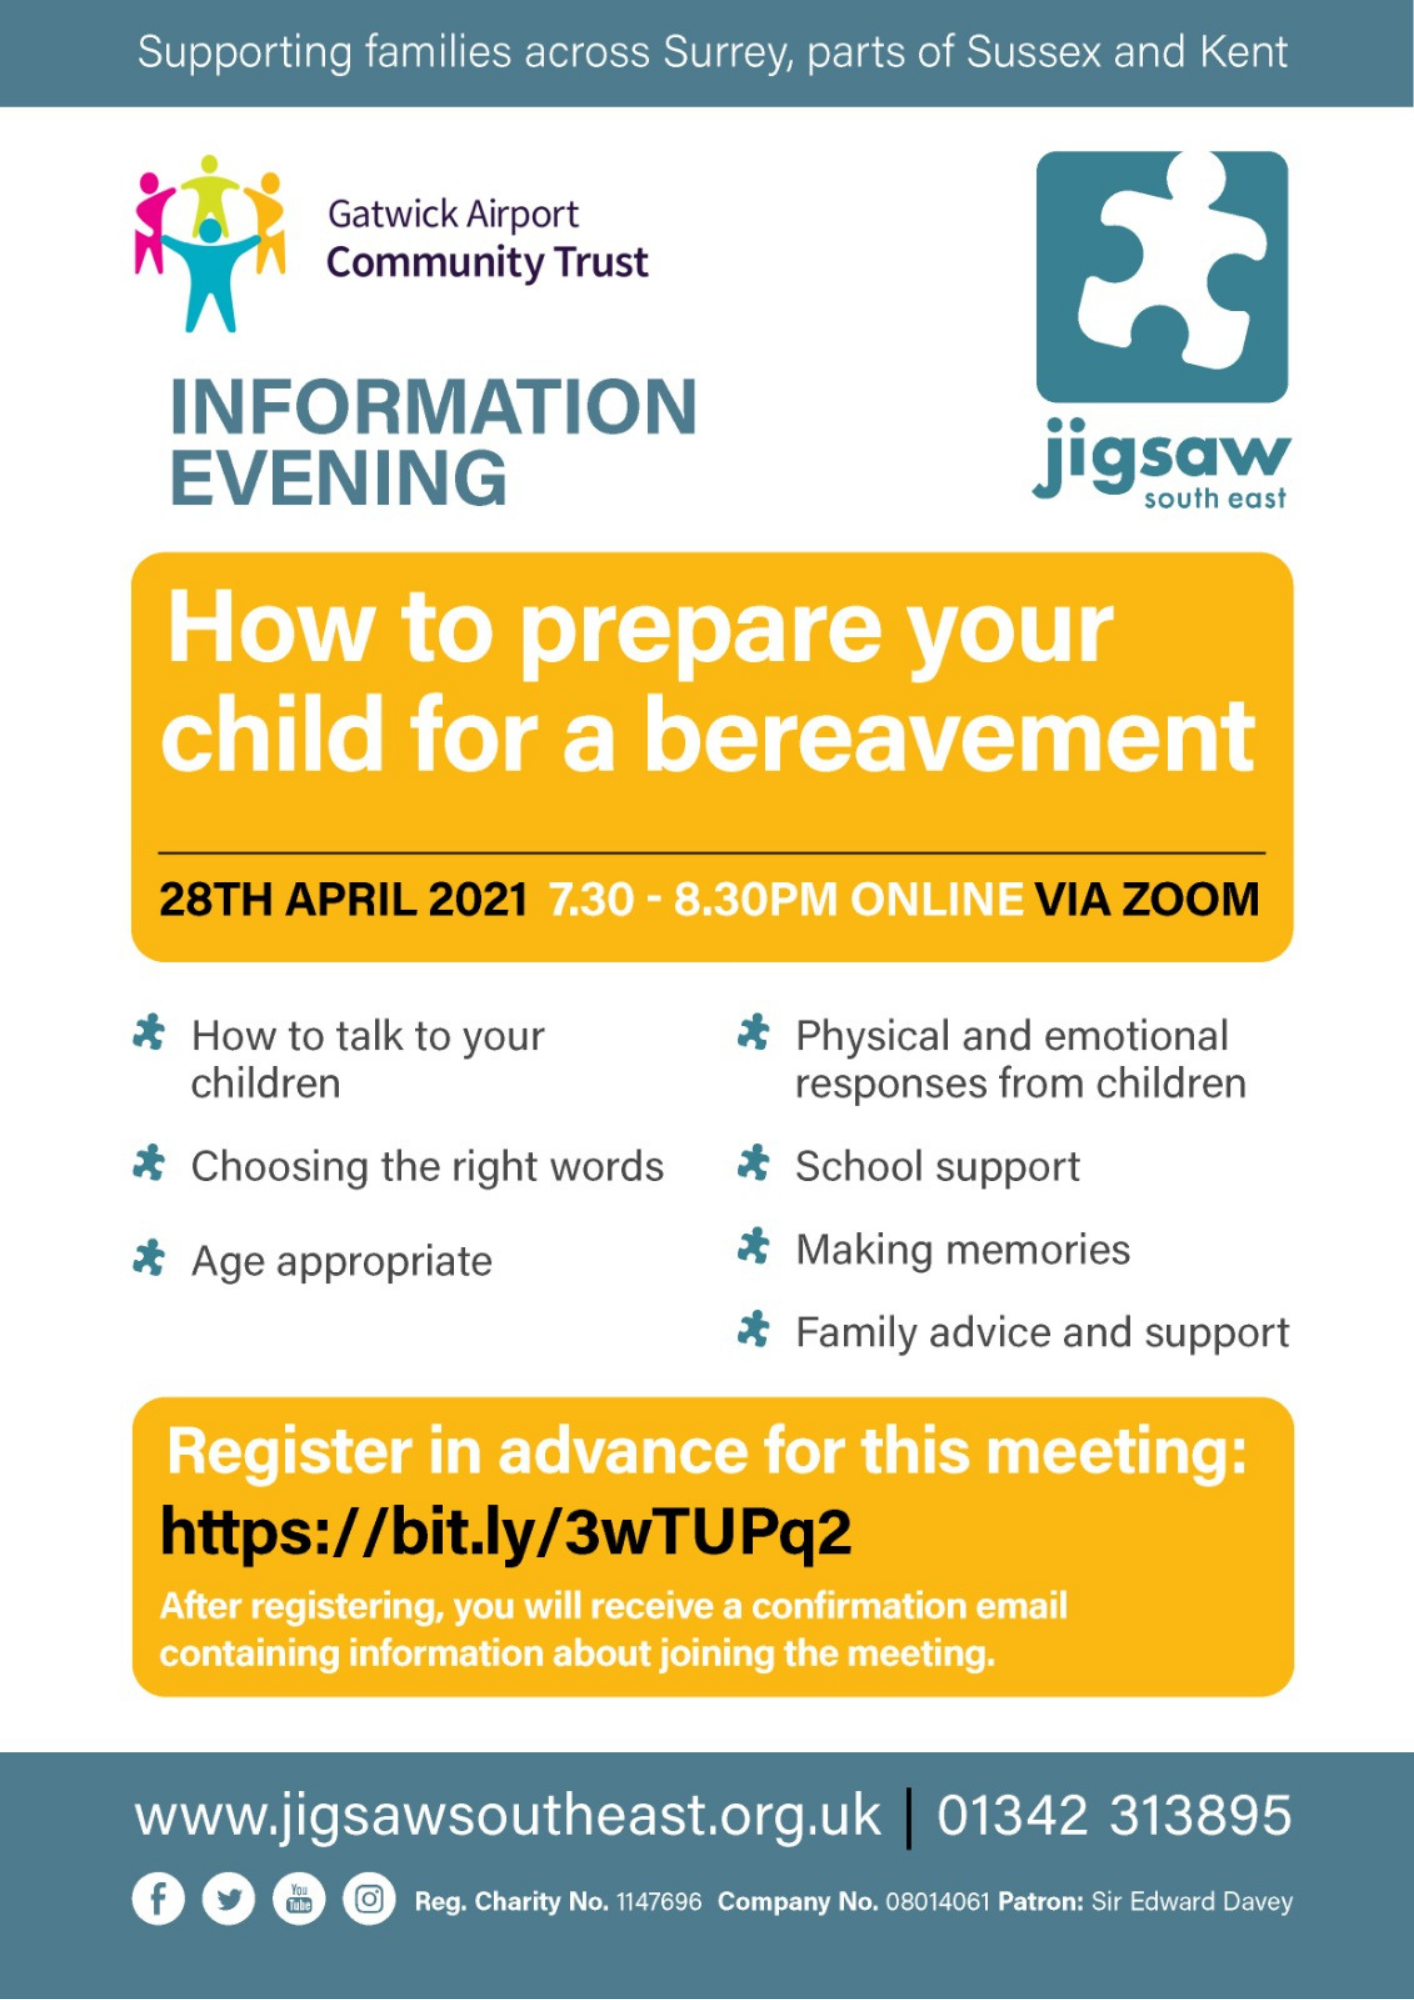 How To Prepare Your Child For A Bereavement – Information Evening – 28th April 2021